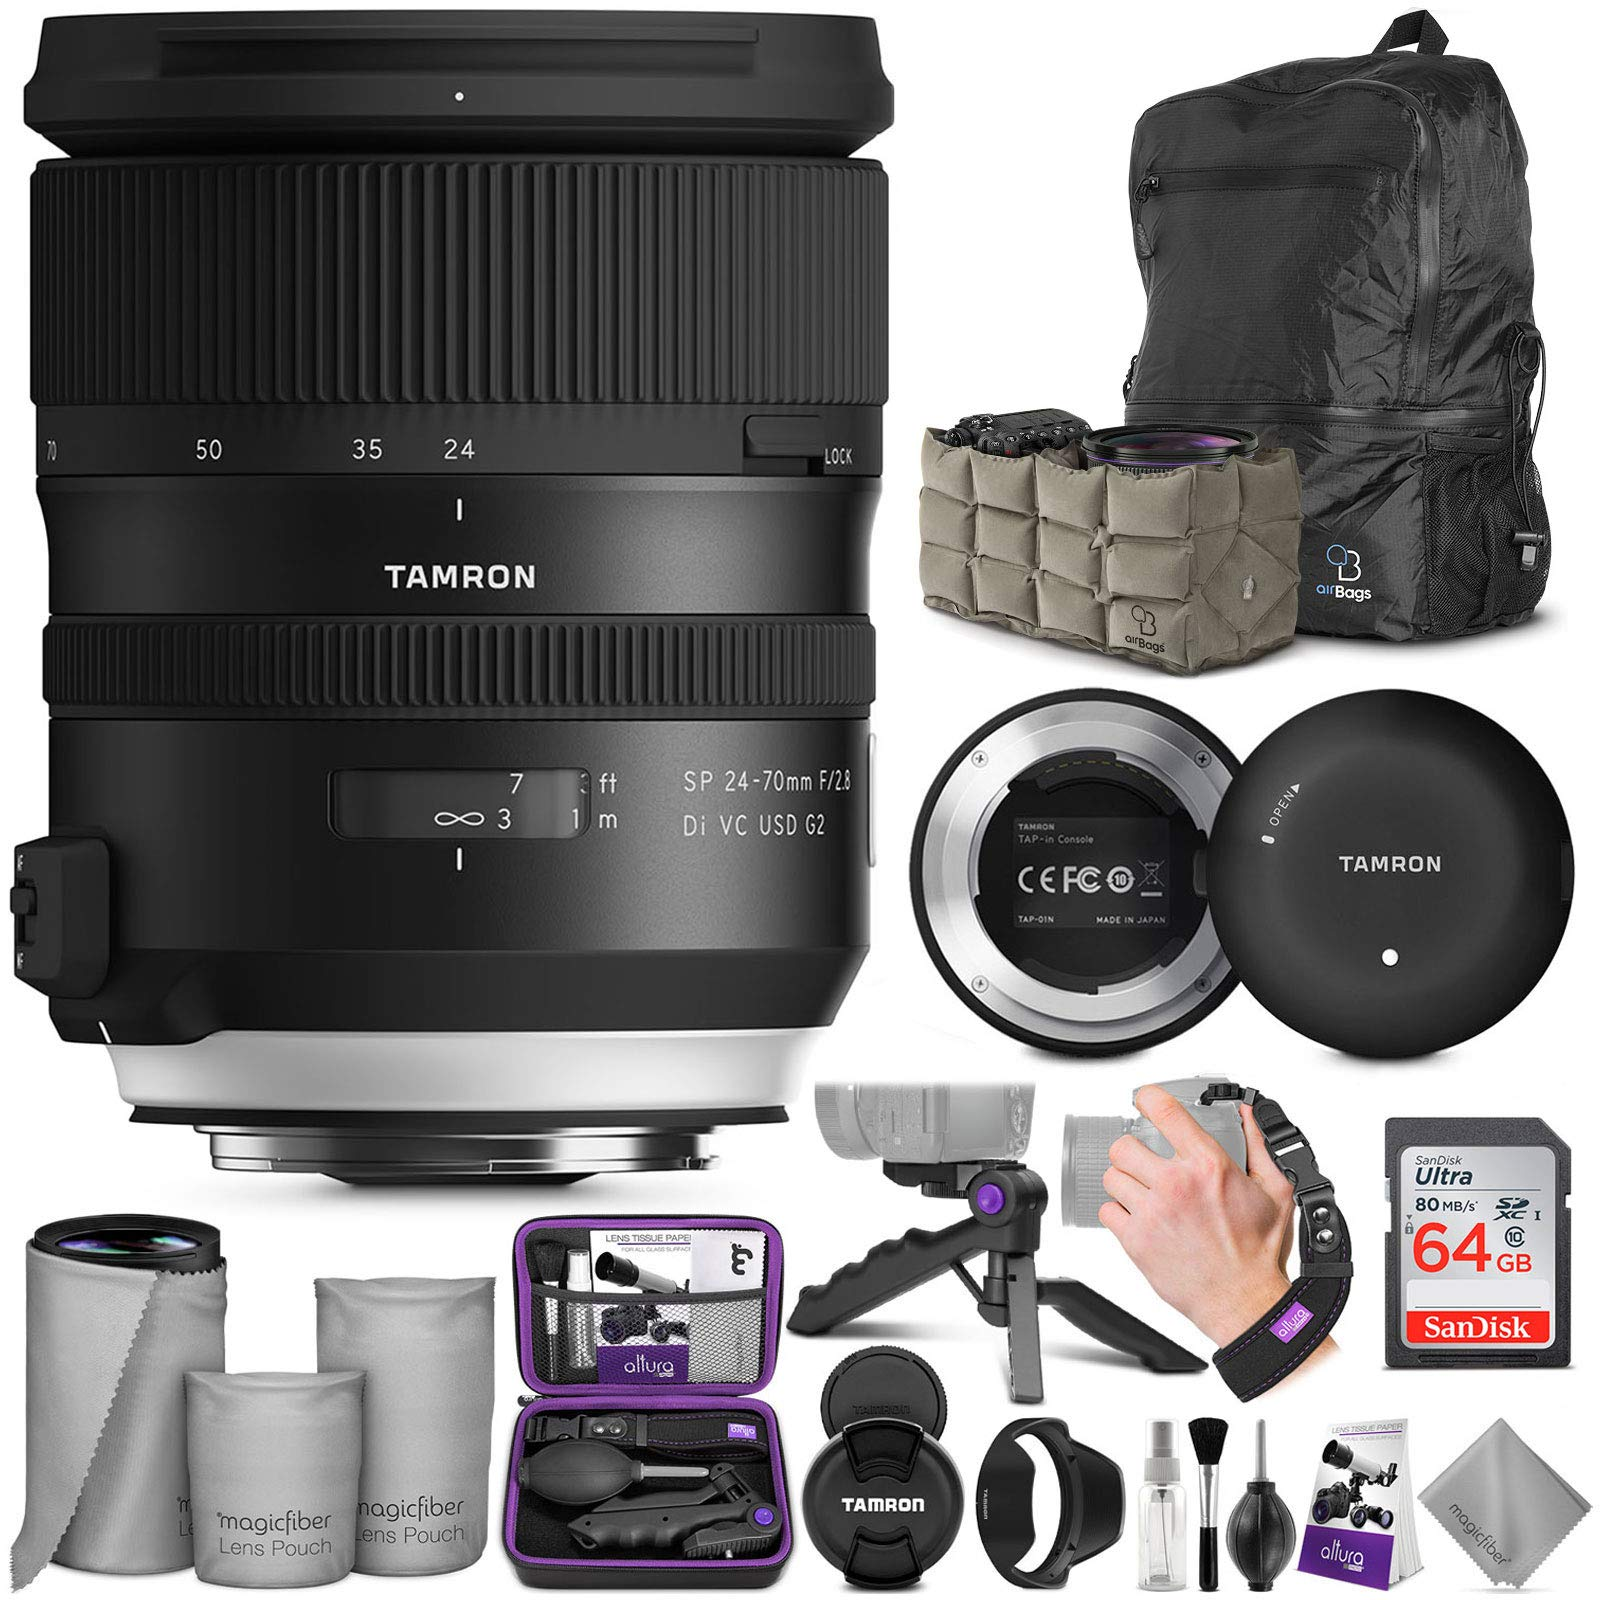 Tamron SP 24-70mm f/2.8 Di VC USD G2 Lens for Canon EF & Tamron Tap-in Console with Altura Photo Advanced Accessory and Travel Bundle